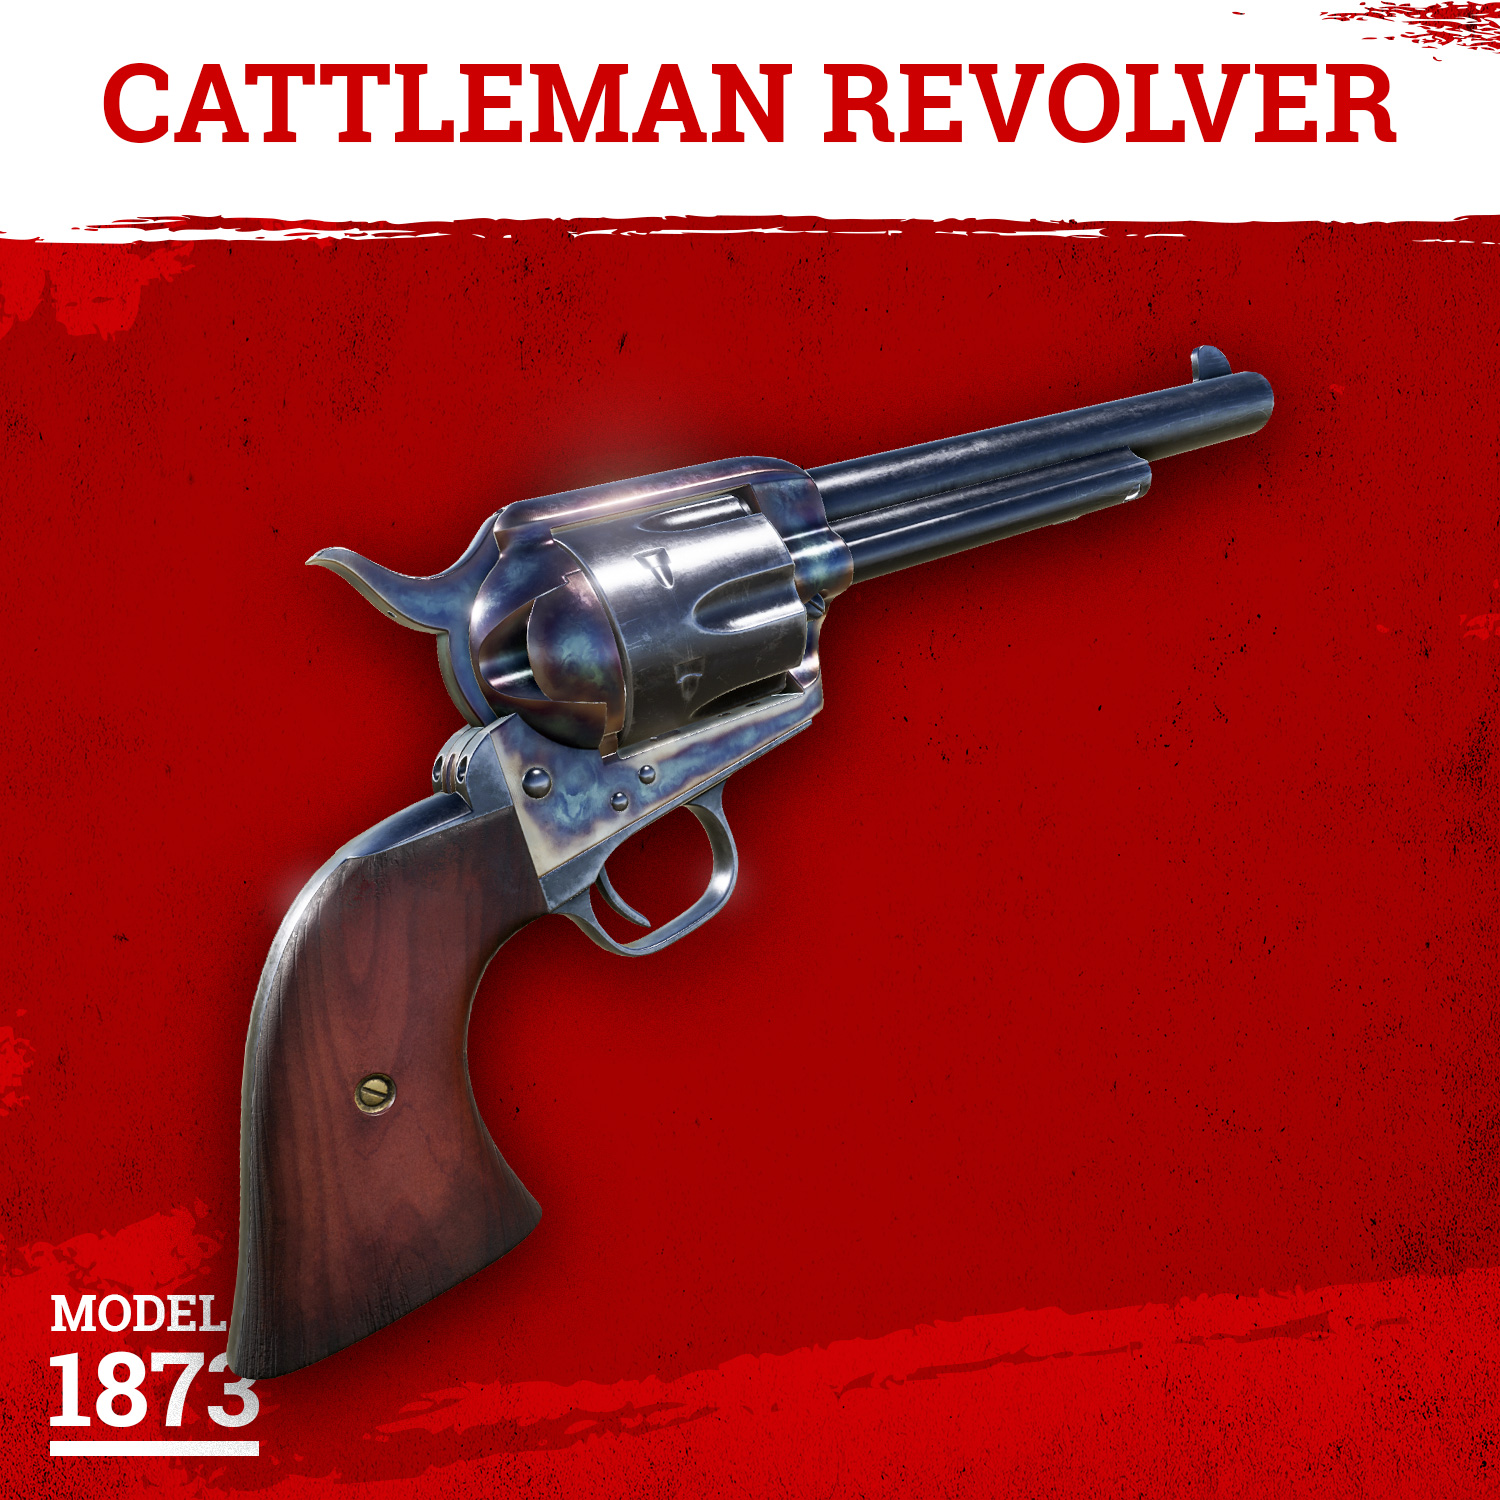 cattleman revolver image dead man s country indie db